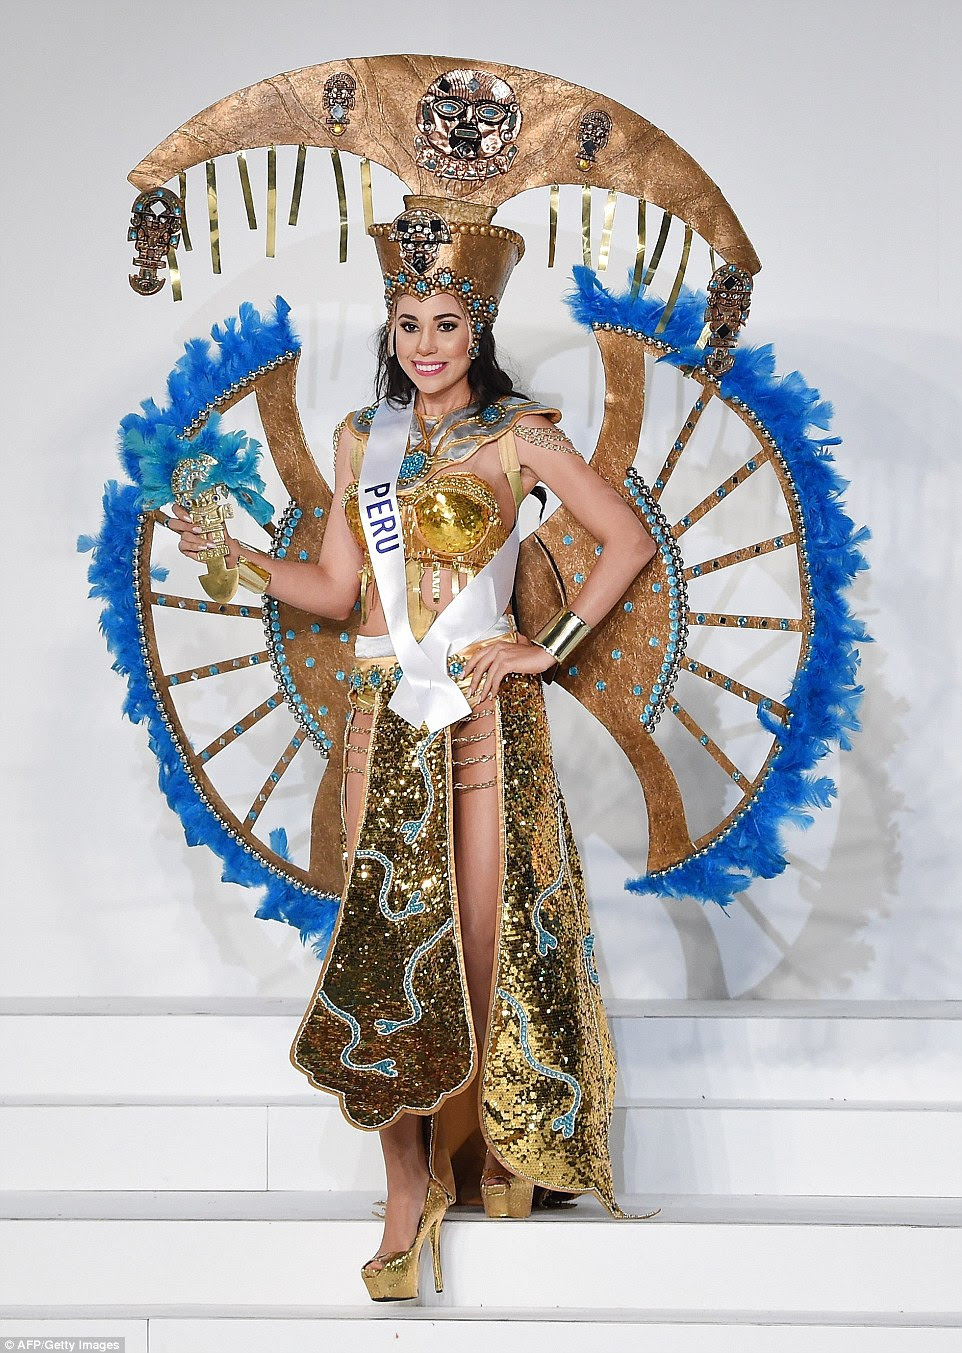 Miss Peru also impressed on the headwear stakes with what looks like an upside down herb chopper on her crown. Cynthia Lucia Toth Montoro's balance is perhaps helped by her fan-like golden wings, dotted with blue gems and fringed with blue feathers. Her look is completed with a golden sparkly skirt, shoes and cropped Madonna-esque bodice